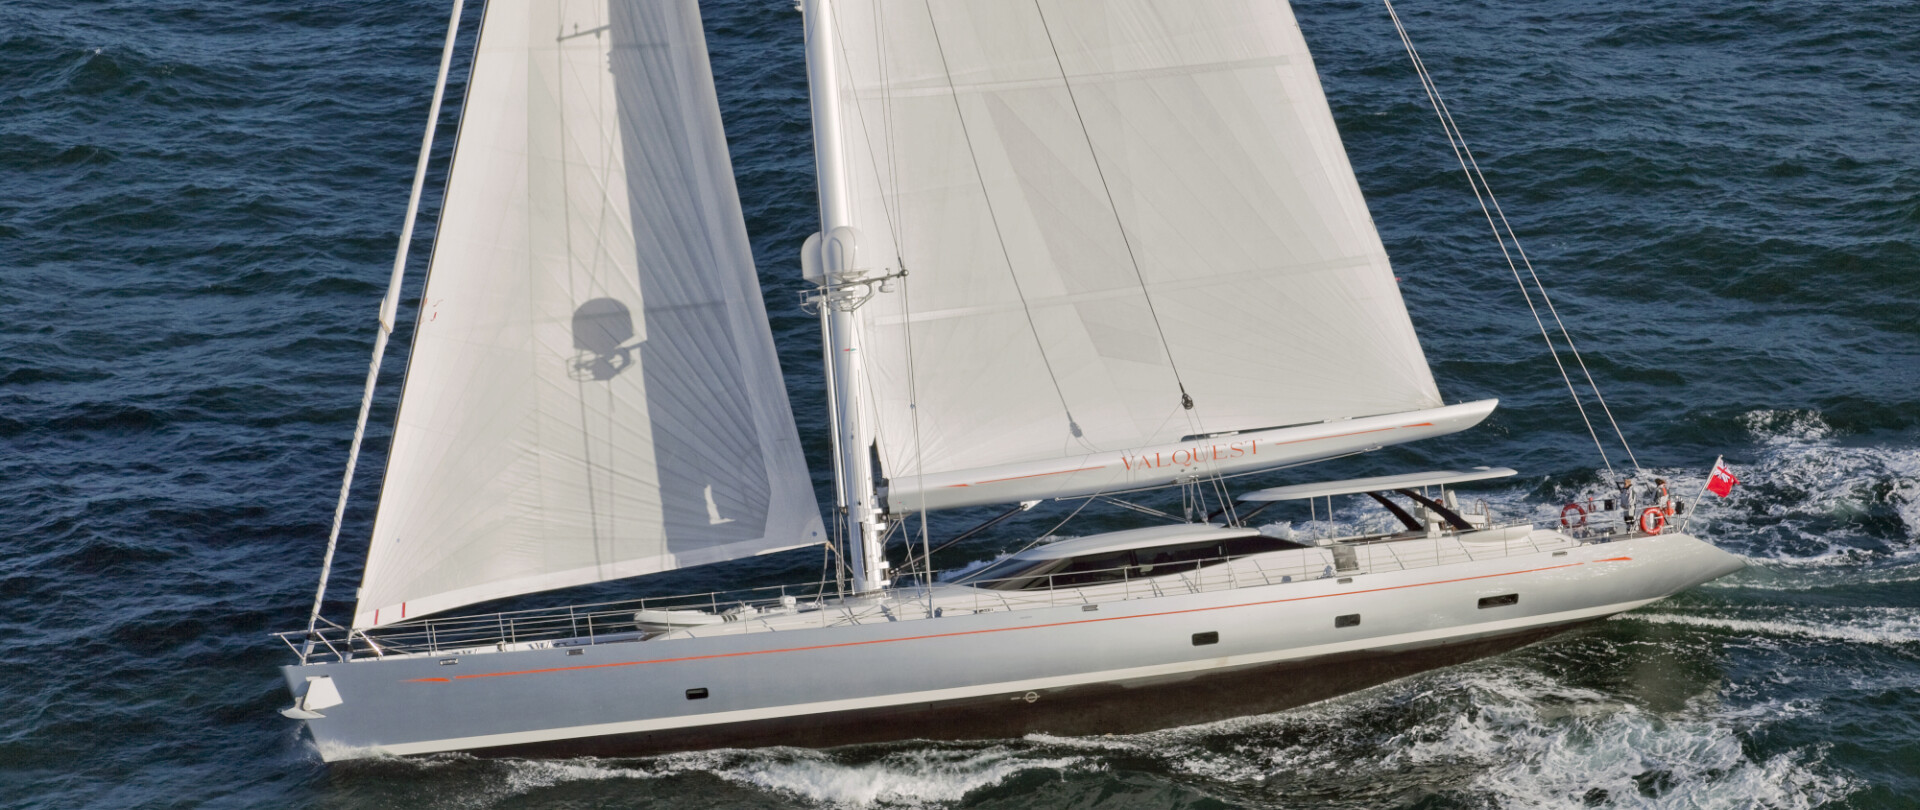 Yacht Sold: Valquest photo 1